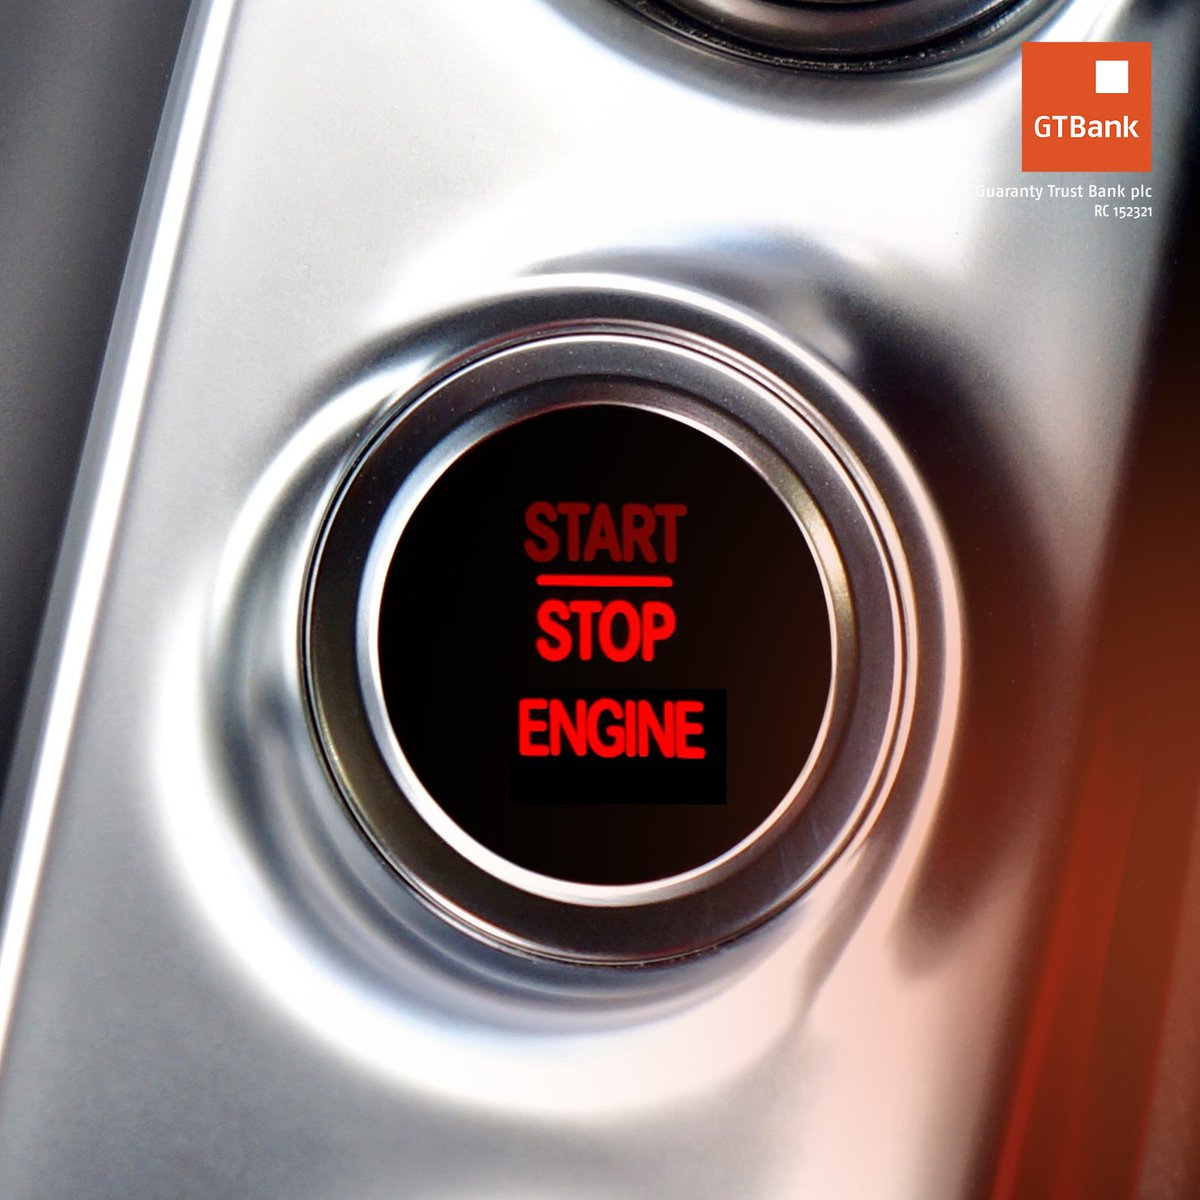 #TGIF On your mark! Set! STOP ENGINE! Happy Weekend, Y'all!